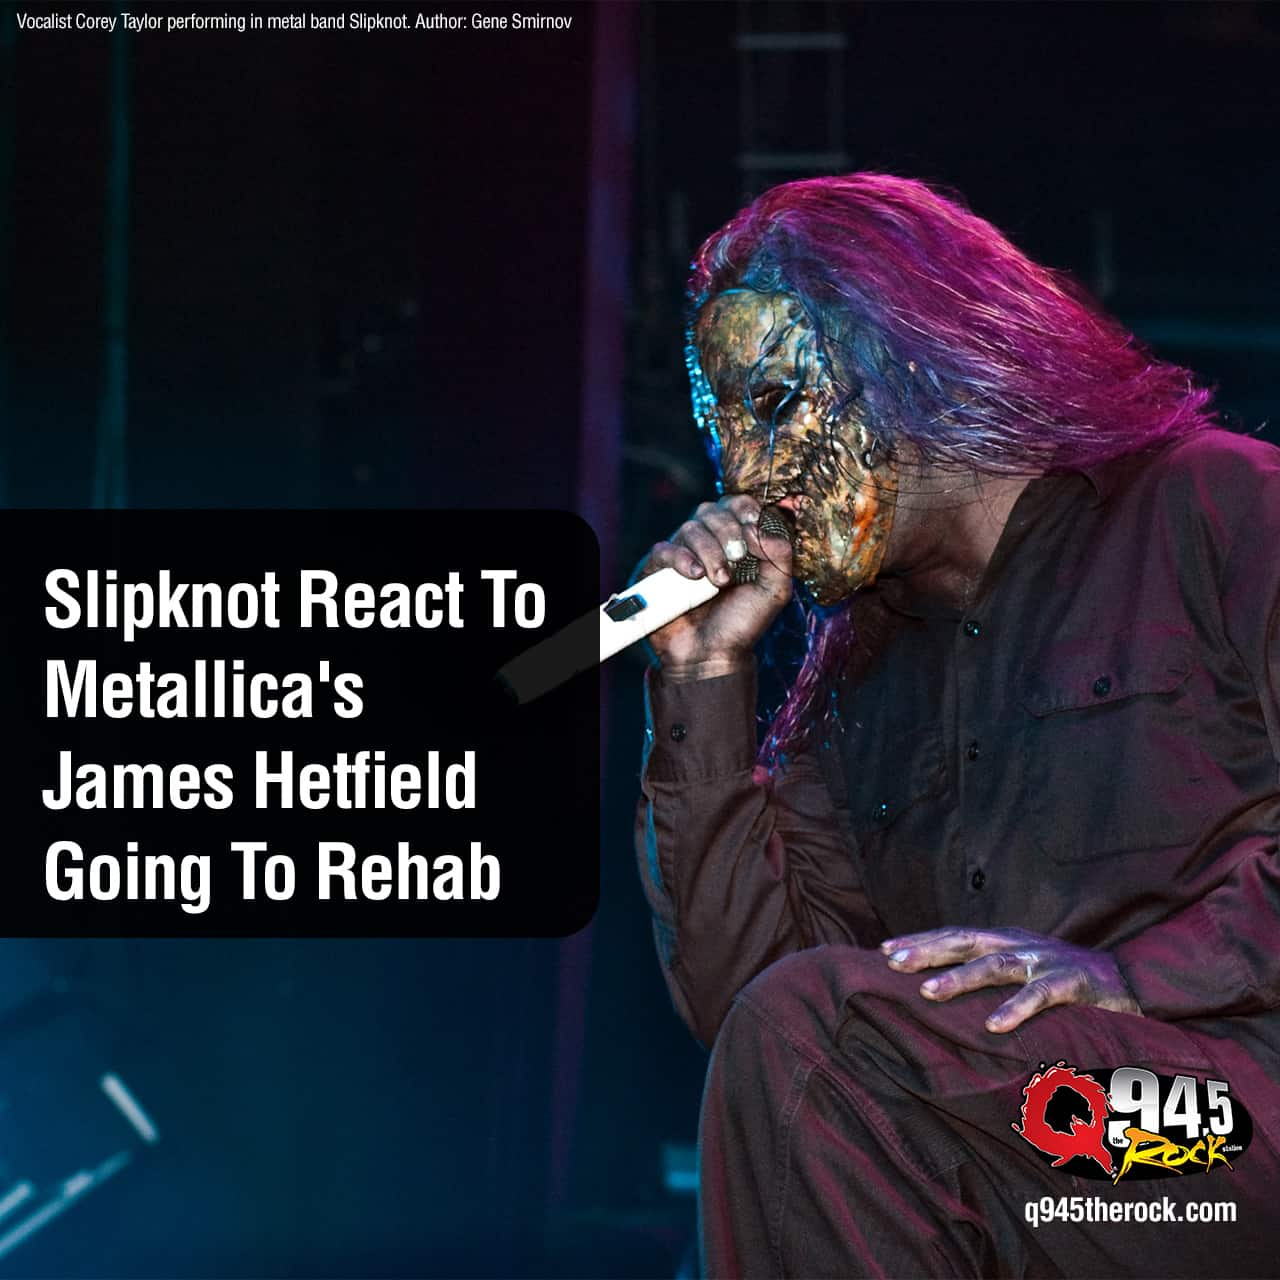 Slipknot React To Metallica's James Hetfield Going To Rehab